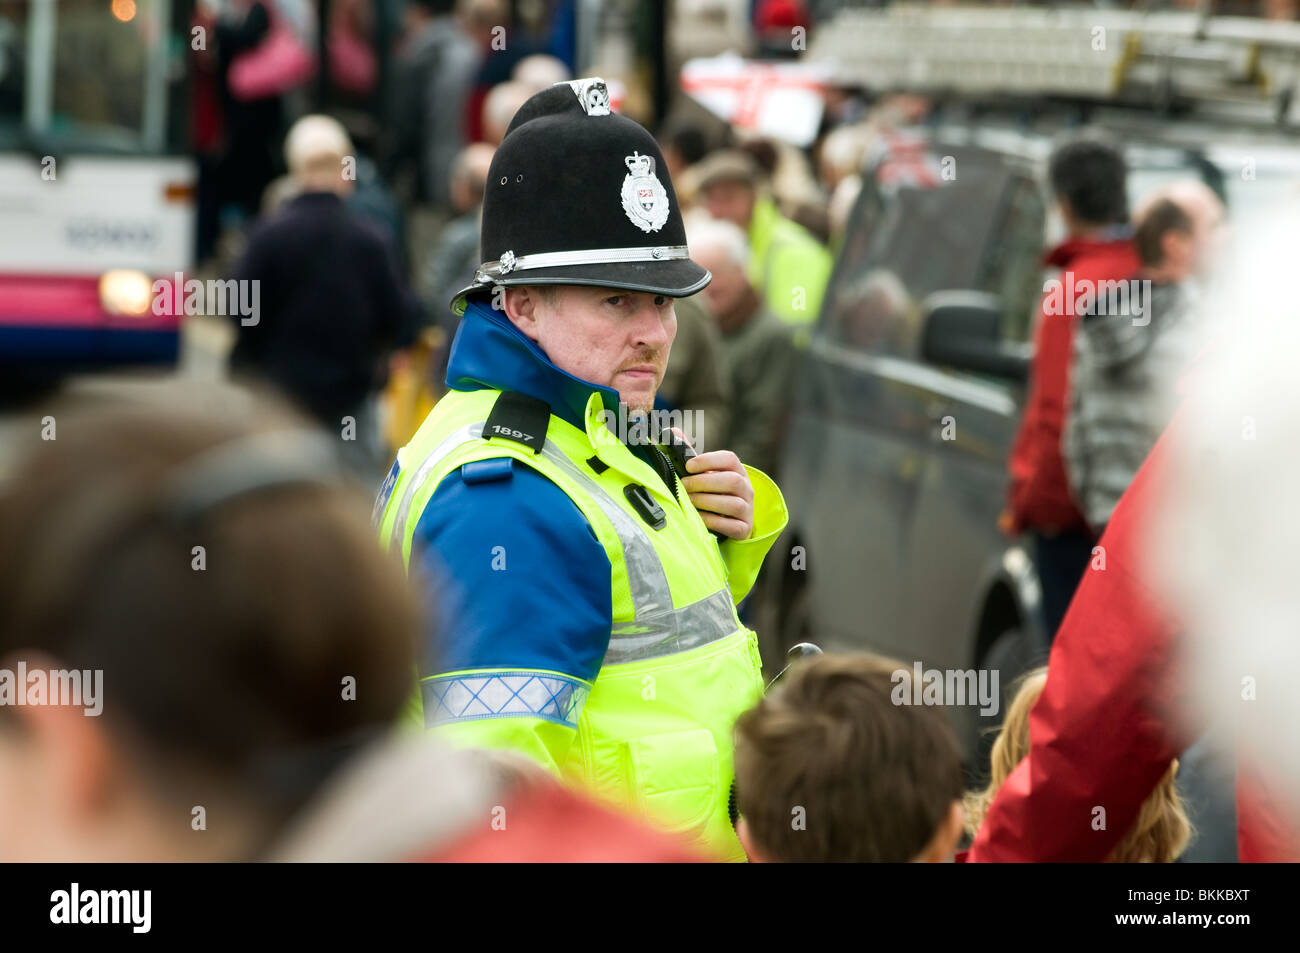 Policeman on duty in Bewdley in Worcestershire, England for a parade of returning Soldiers from Afghanistan in March - Stock Image